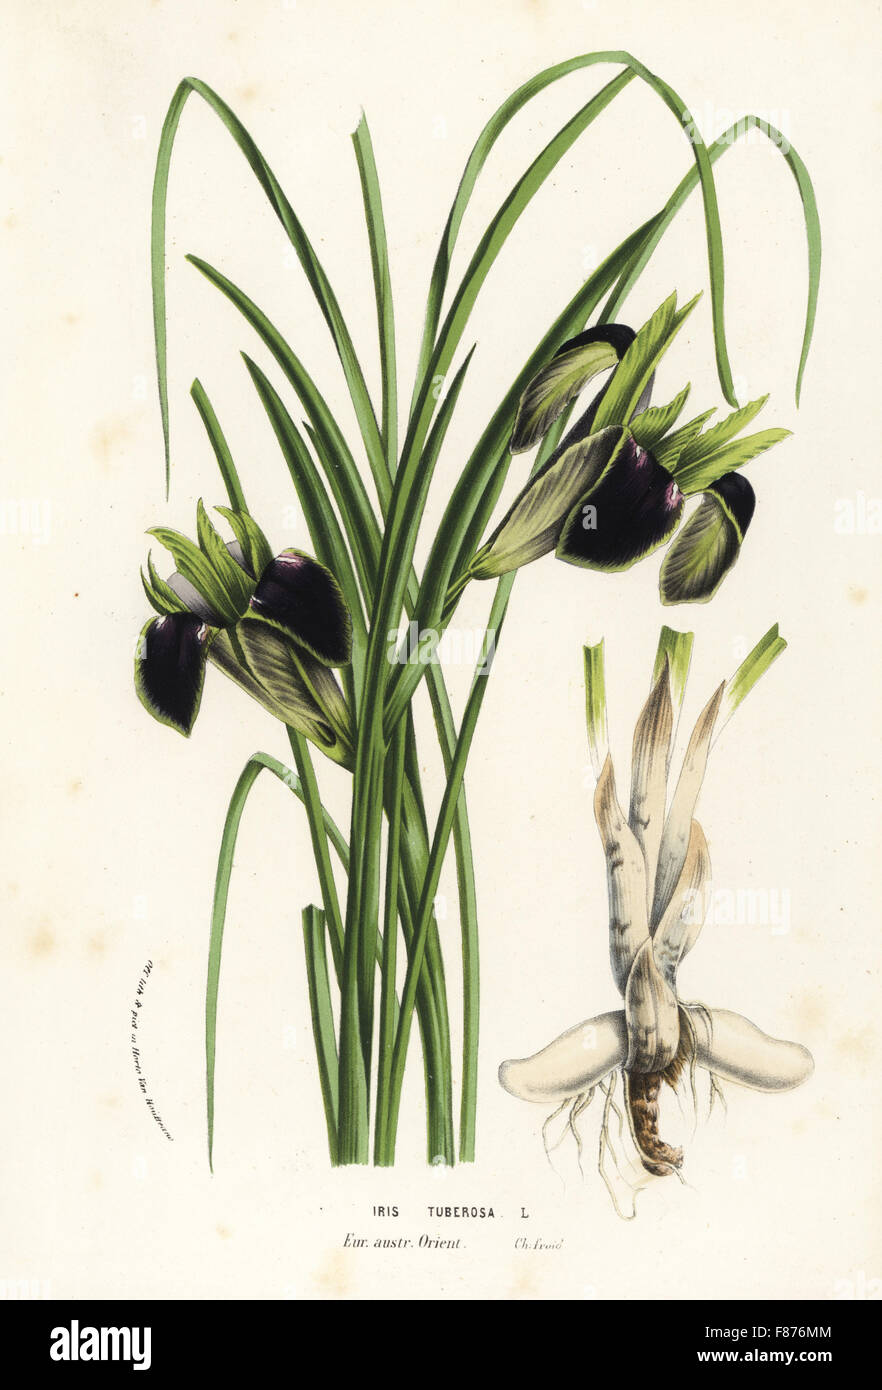 Snake's-head or widow iris, Iris tuberosa. Handcoloured lithograph from Louis van Houtte and Charles Lemaire's - Stock Image